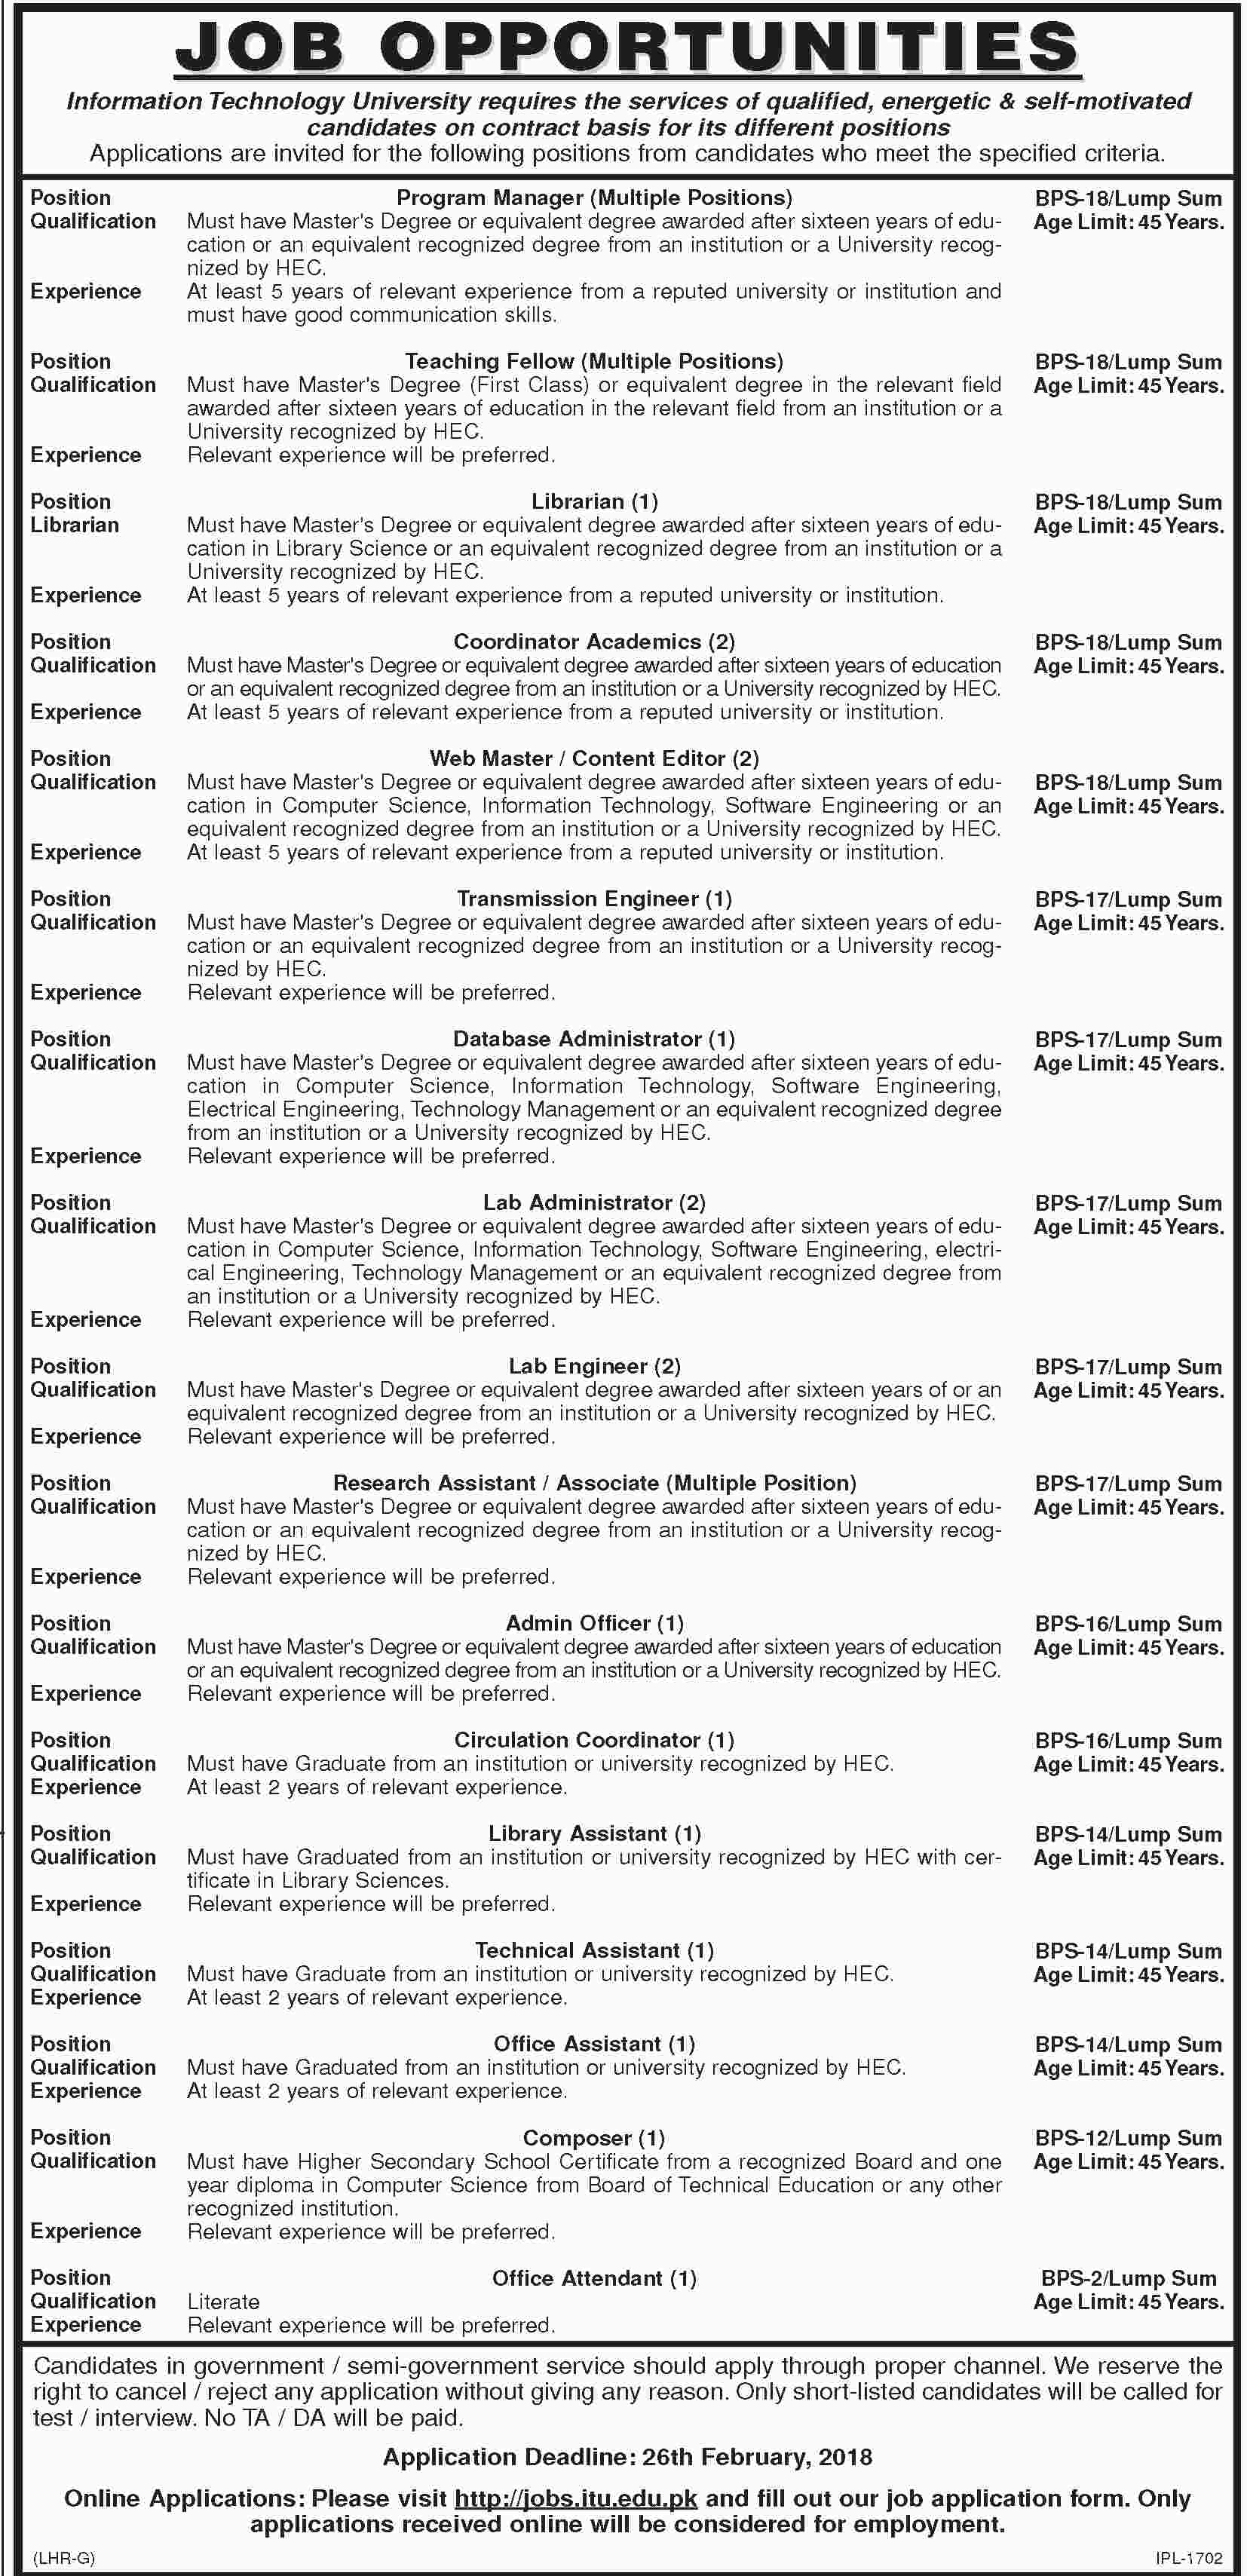 Dawn Newspaper Information Technology University Jobs 09 February 2018